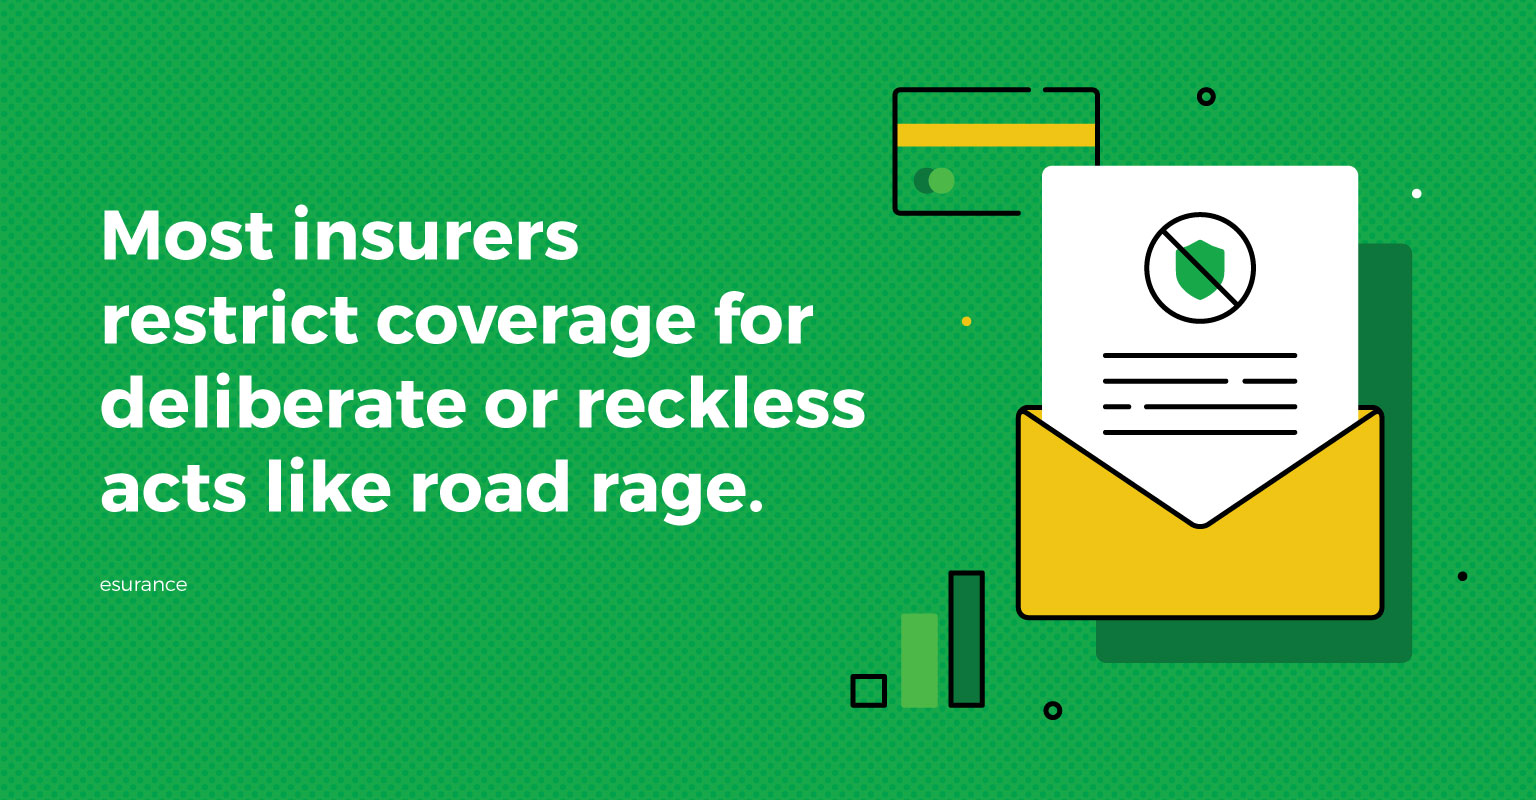 road rage leads insurance companies to restrict coverage for deliberate or reckless acts